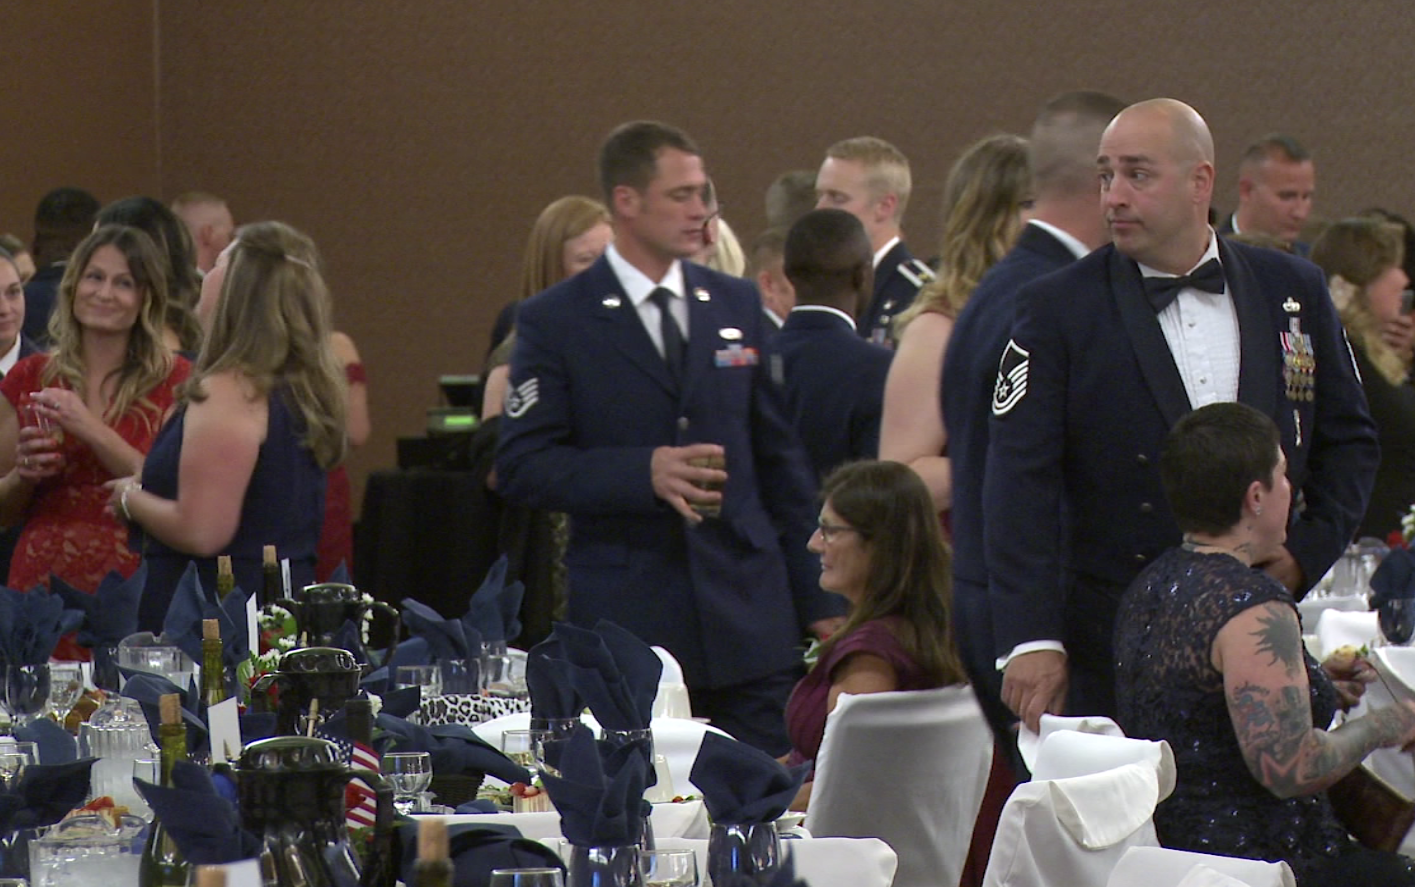 Airmen and women mingle and share stories during the Ellsworth Air Force Ball on Saturday, Sept 23, 2018.